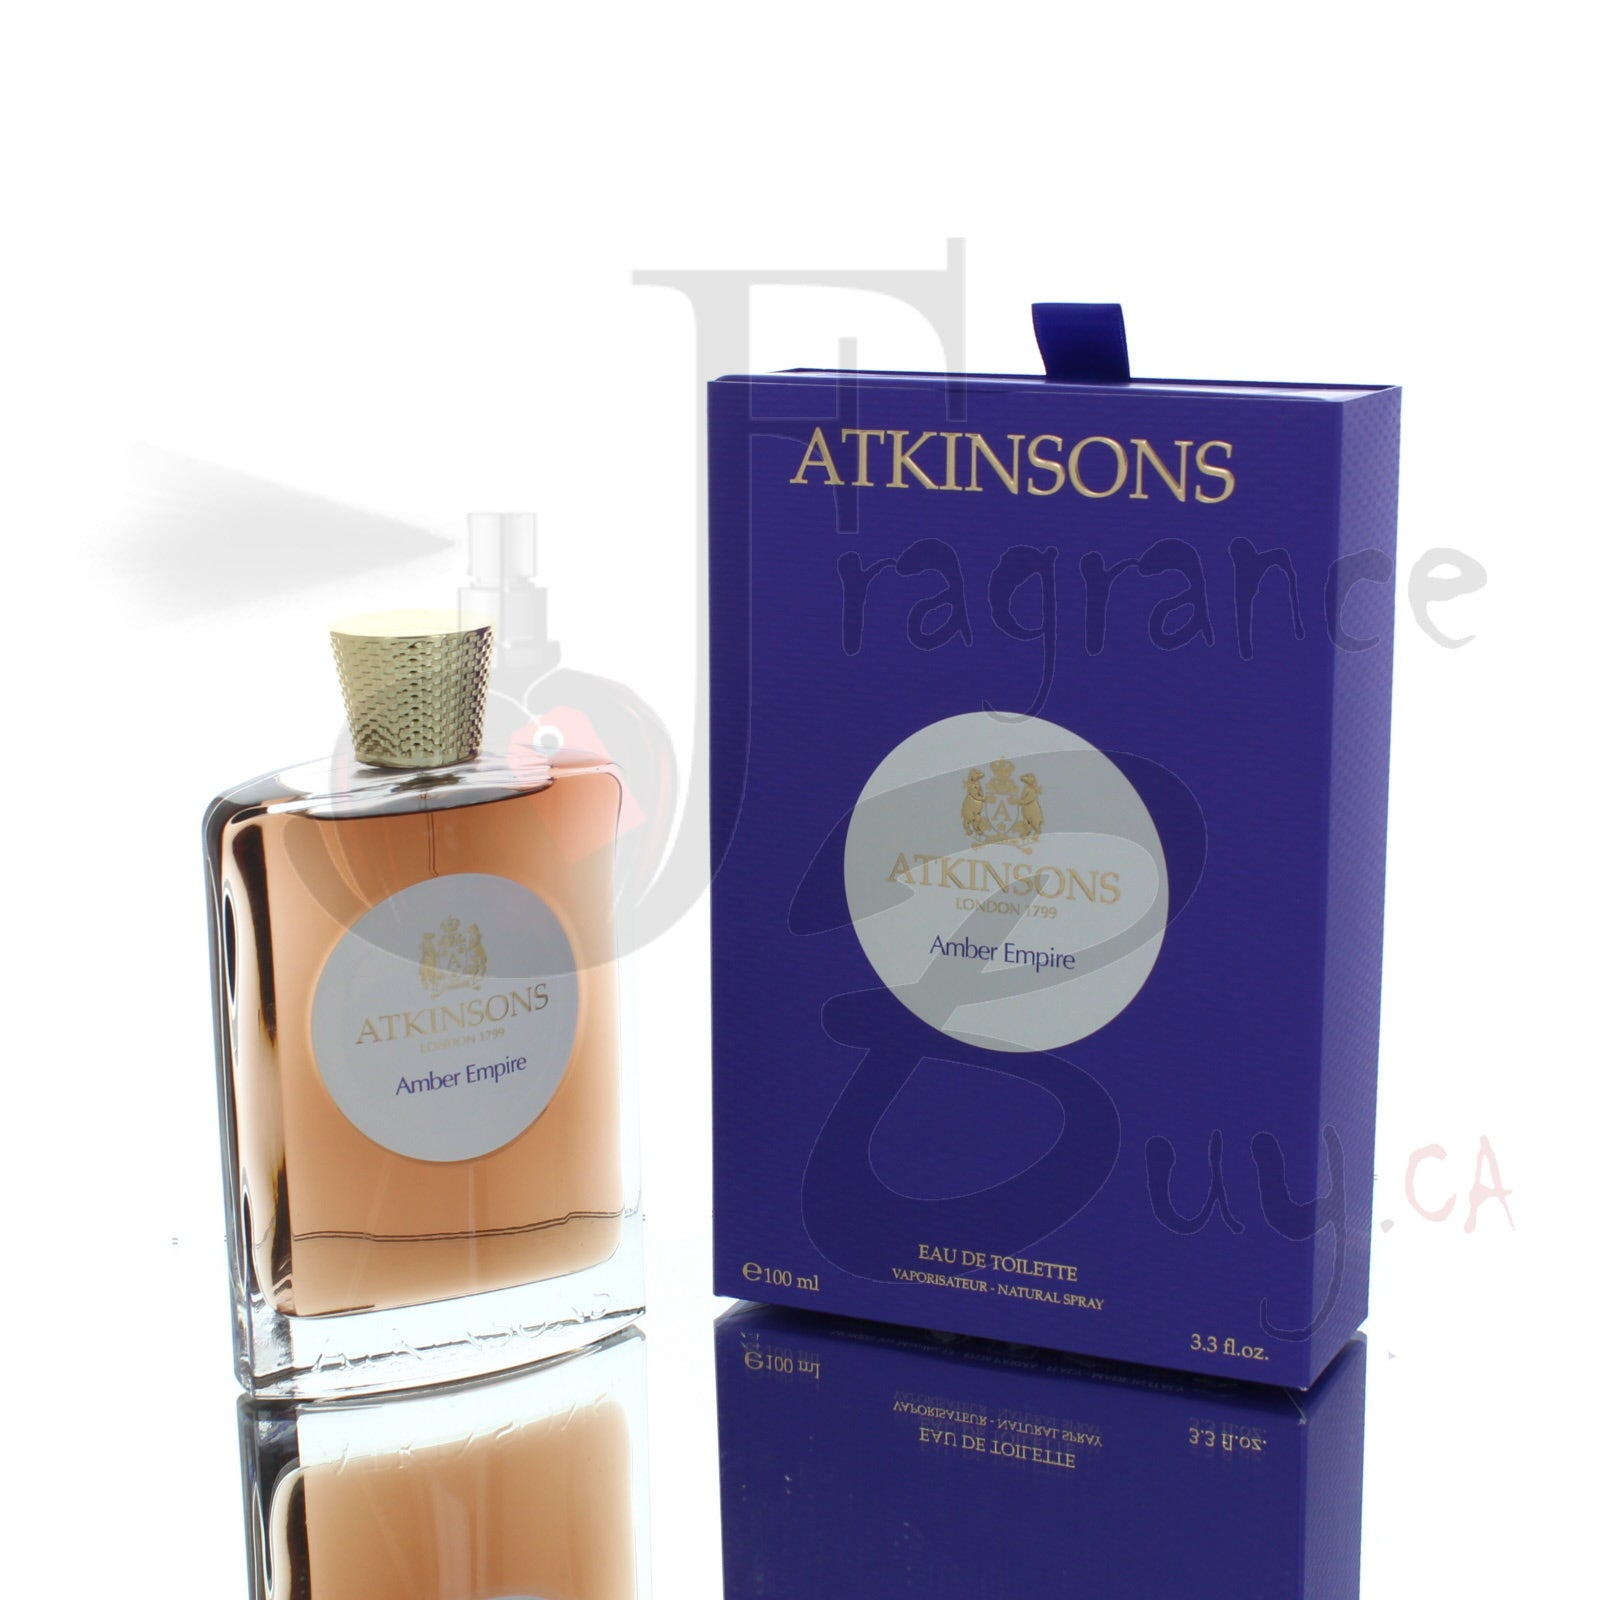 Atkinsons Amber Empire For Man/Woman